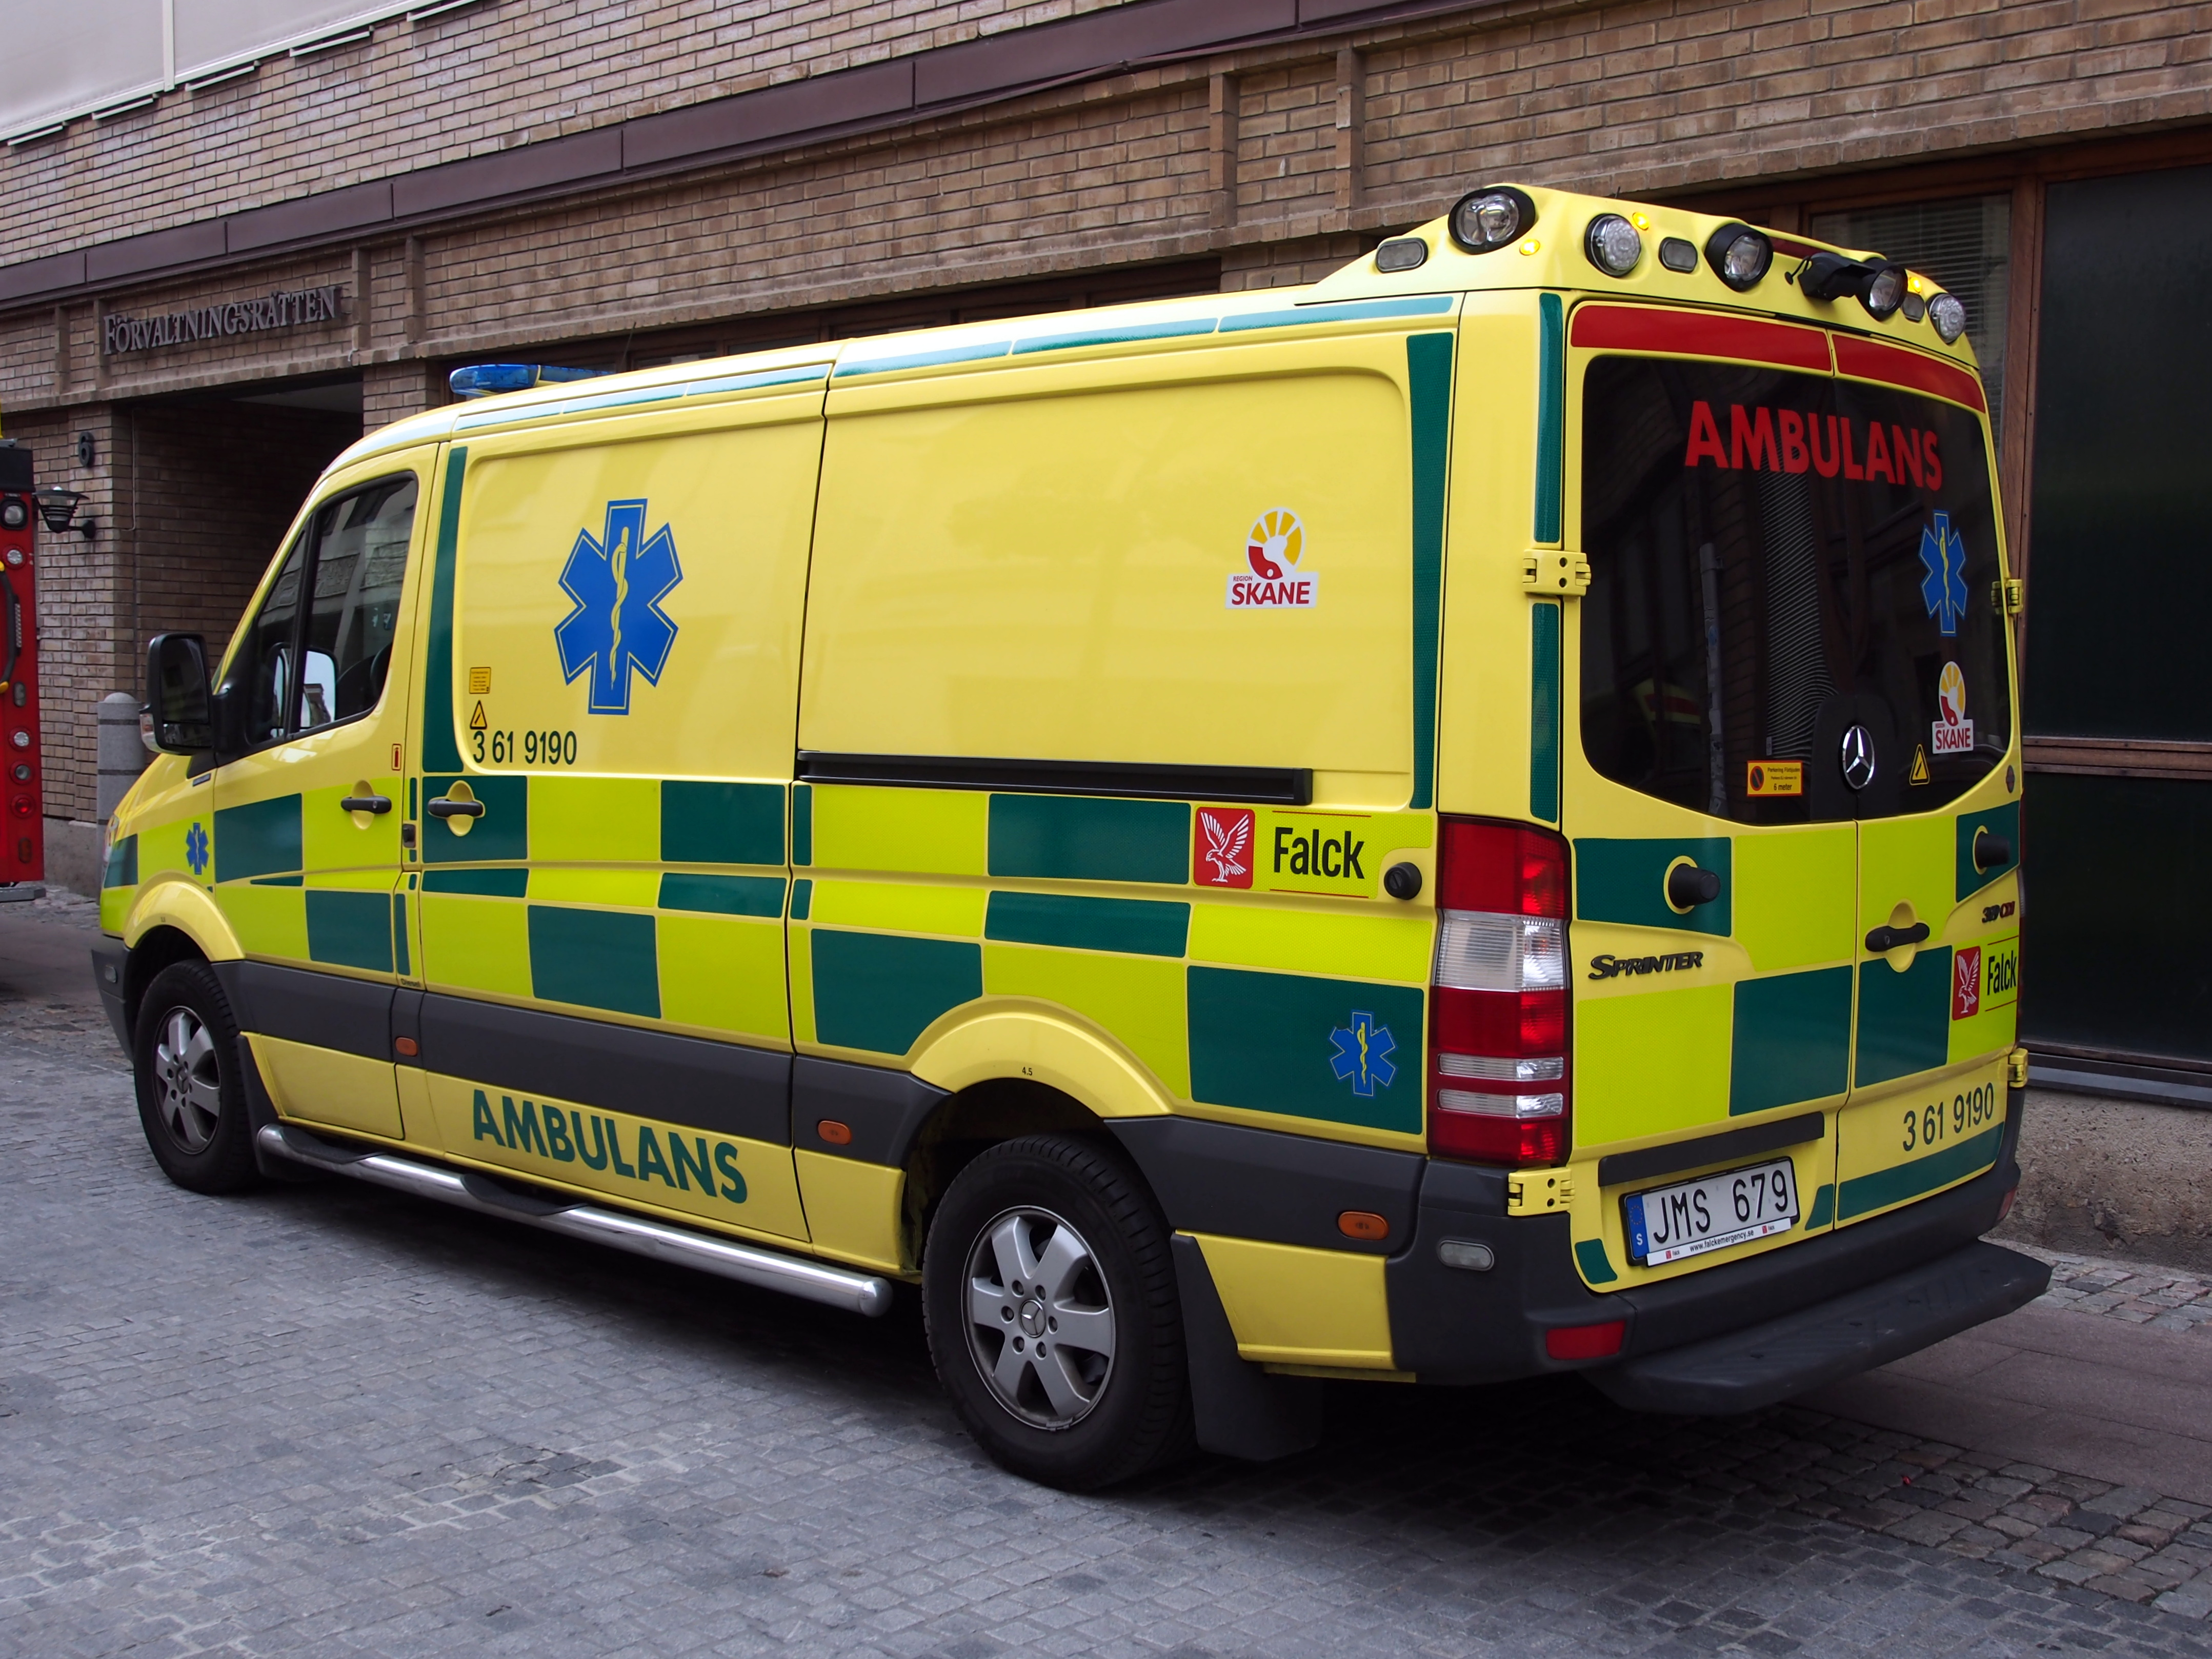 Mercedes Sprinter Wiki >> File:Mercedes Sprinter Ambulance in Malmo pic4.JPG - Wikimedia Commons